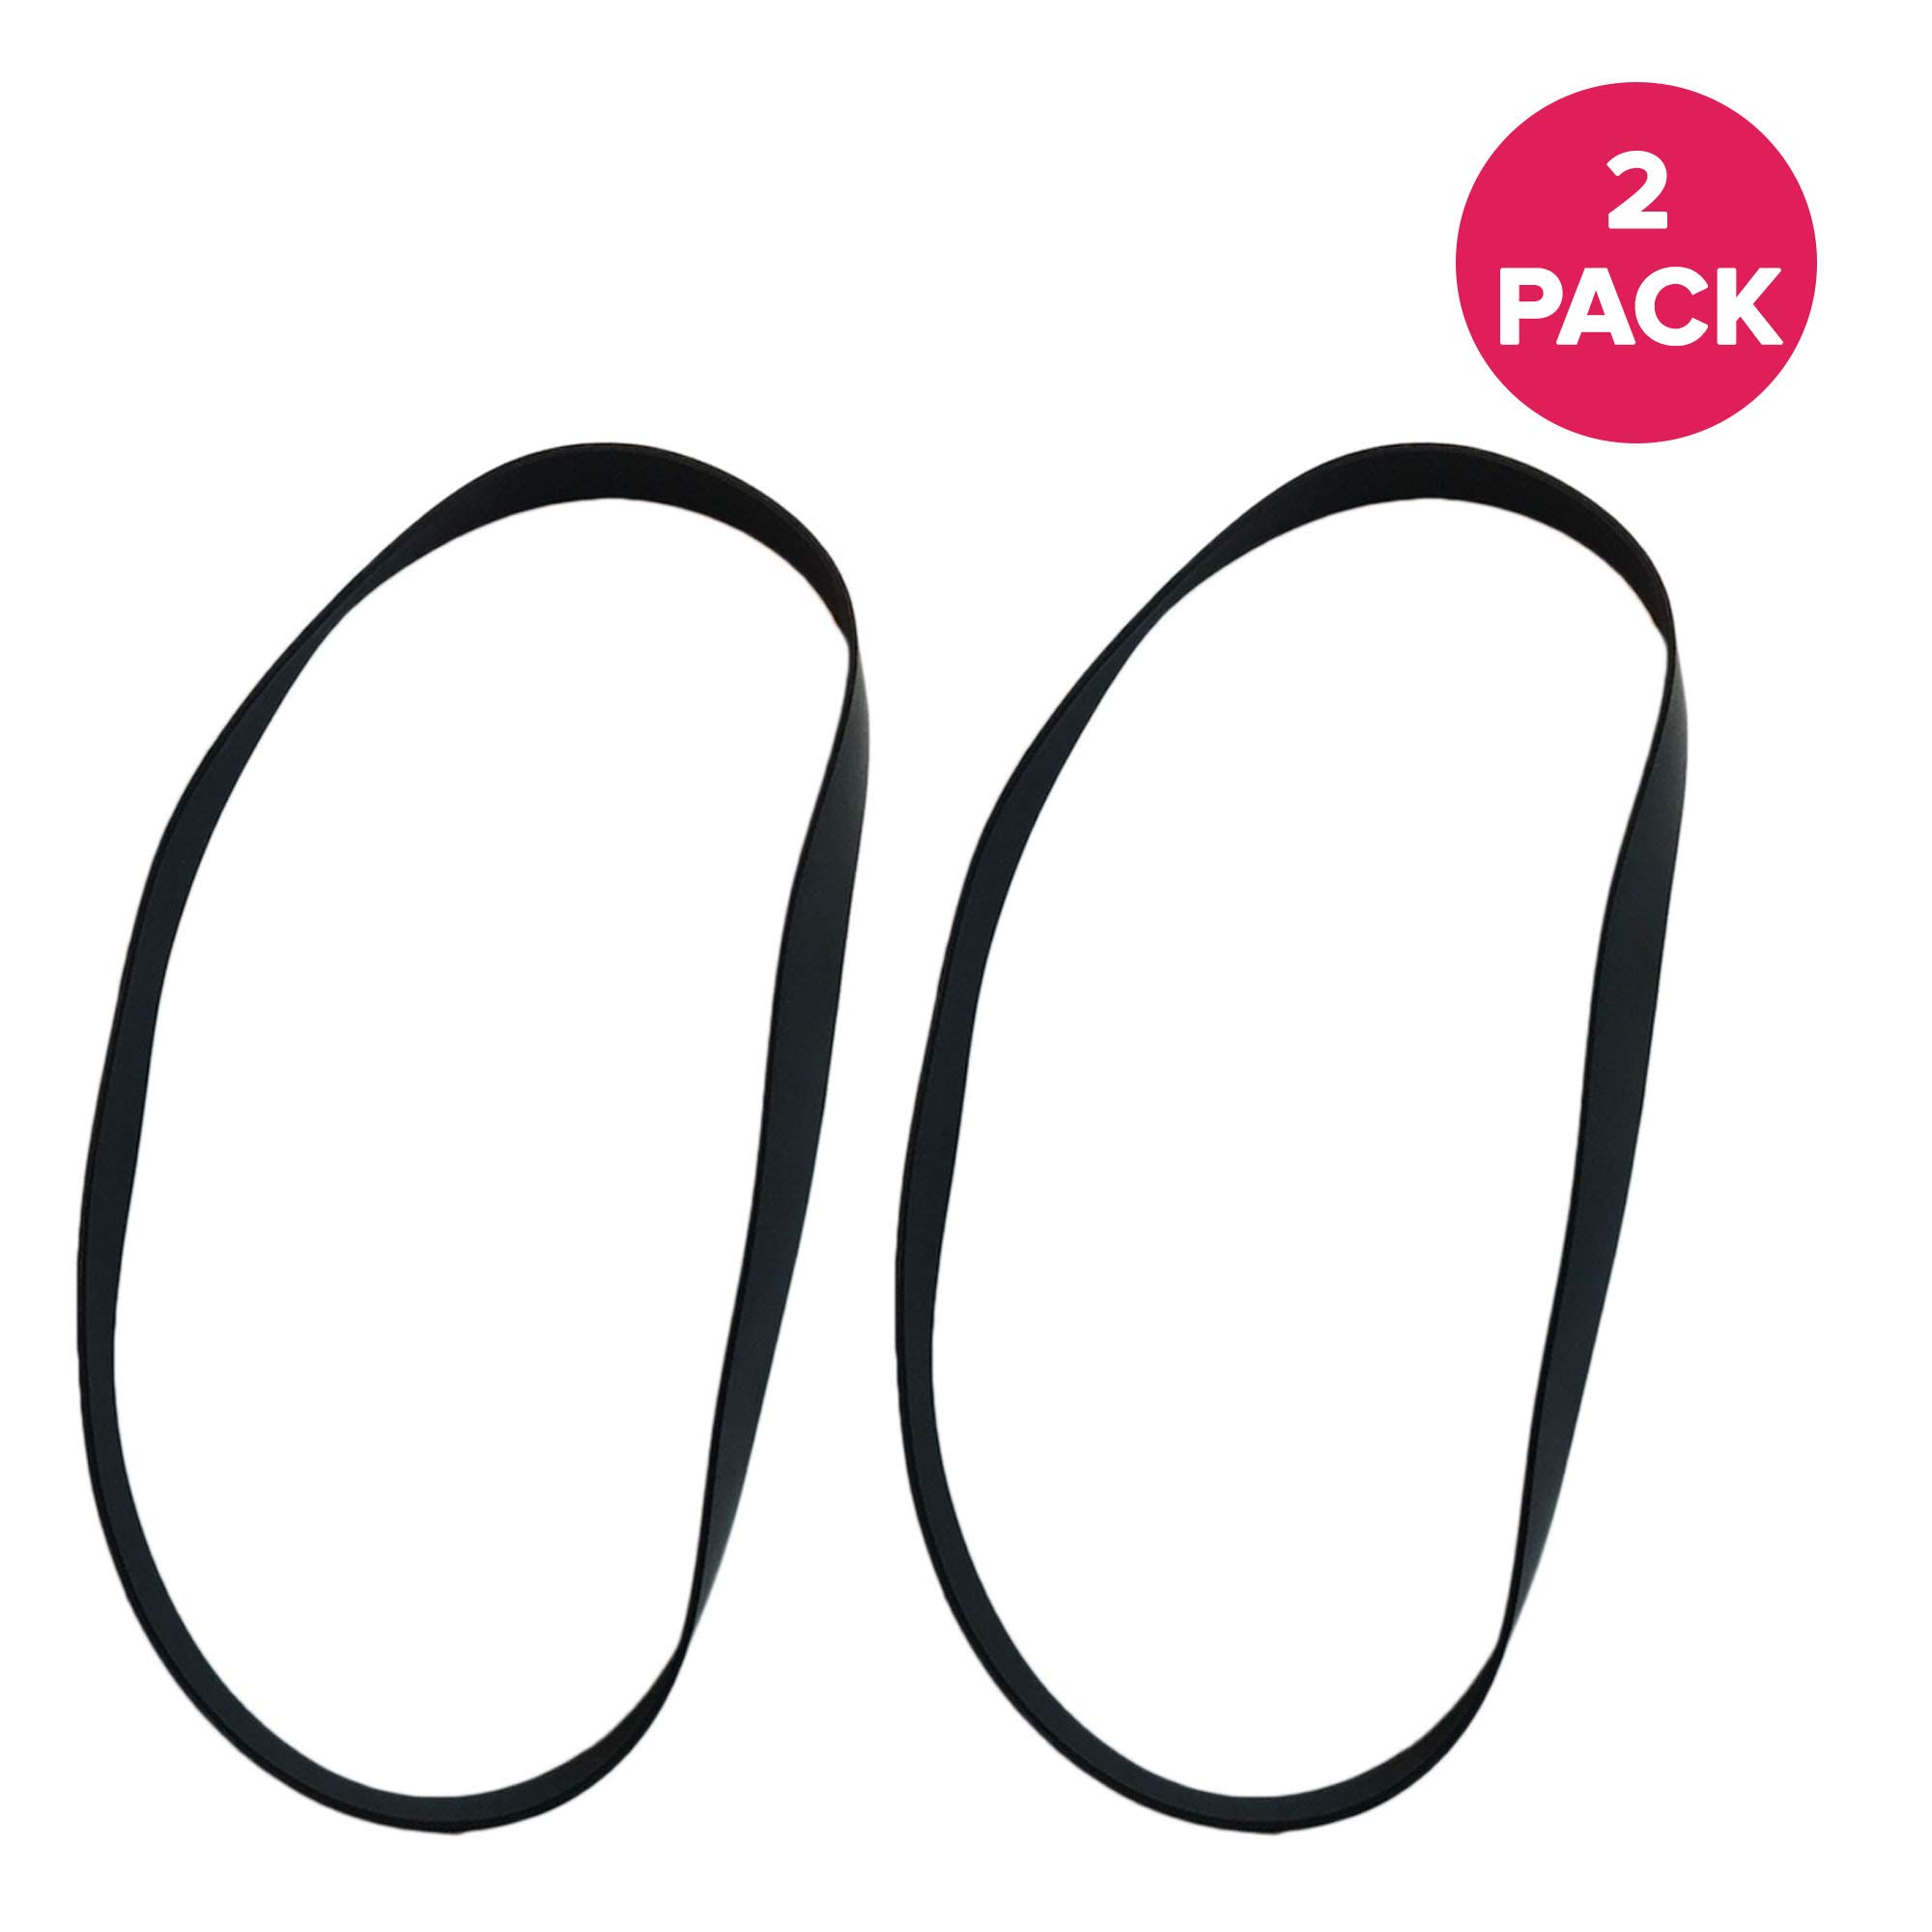 Crucial Vacuum Replacement Belt Parts - Compatible with Hoover Skinny Drive Part # 562289001, AH20065 - Fits Hoover T-Series Non-Stretch Belt Fits Rewind Upright - For Home, Office (2 Pack)